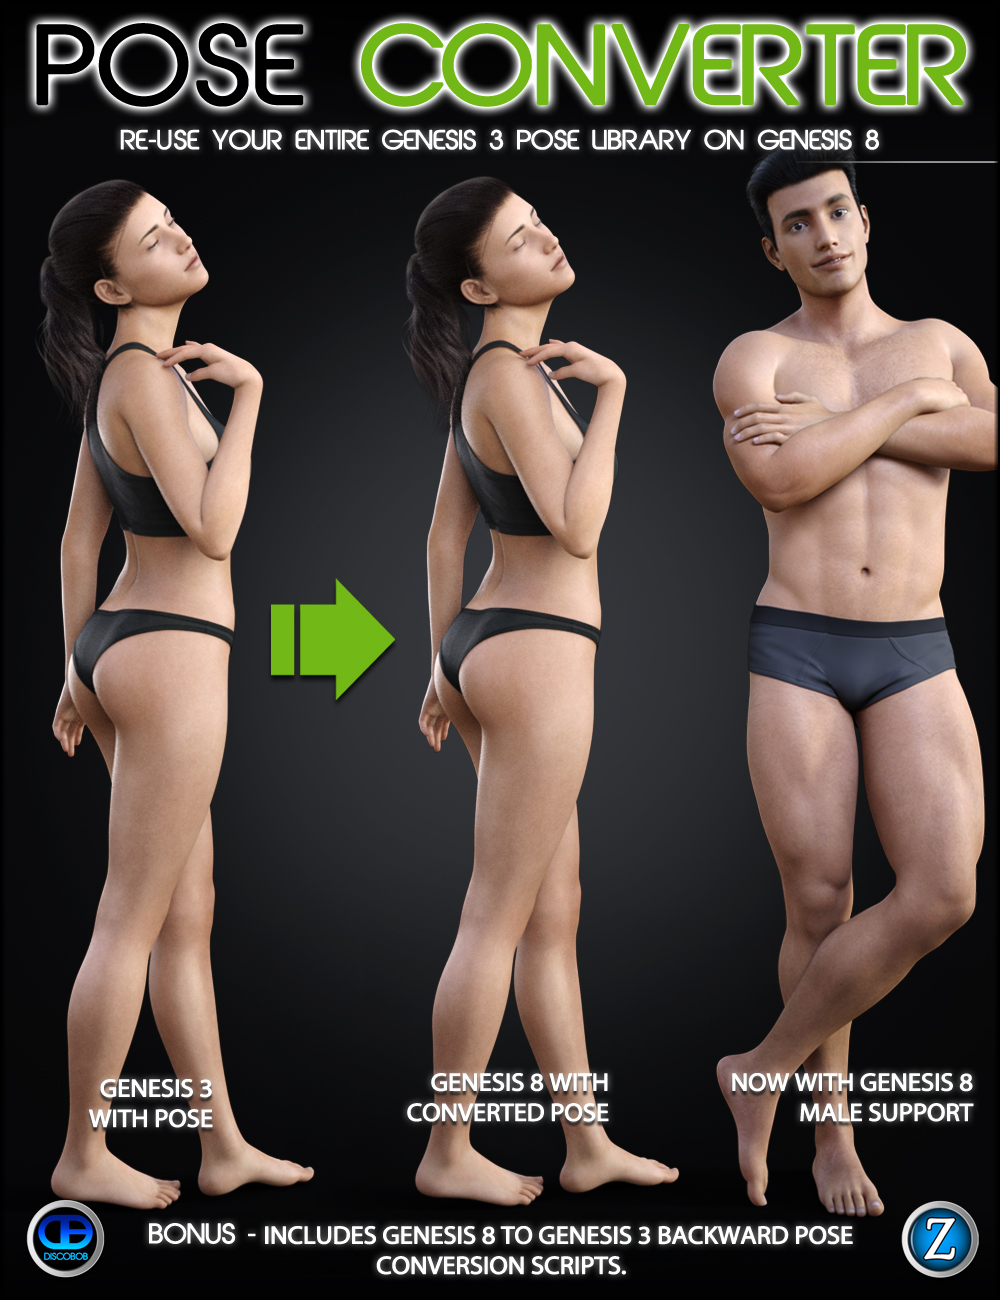 Genesis 3 to Genesis 8 Pose Converter by: DiscobobZev0, 3D Models by Daz 3D